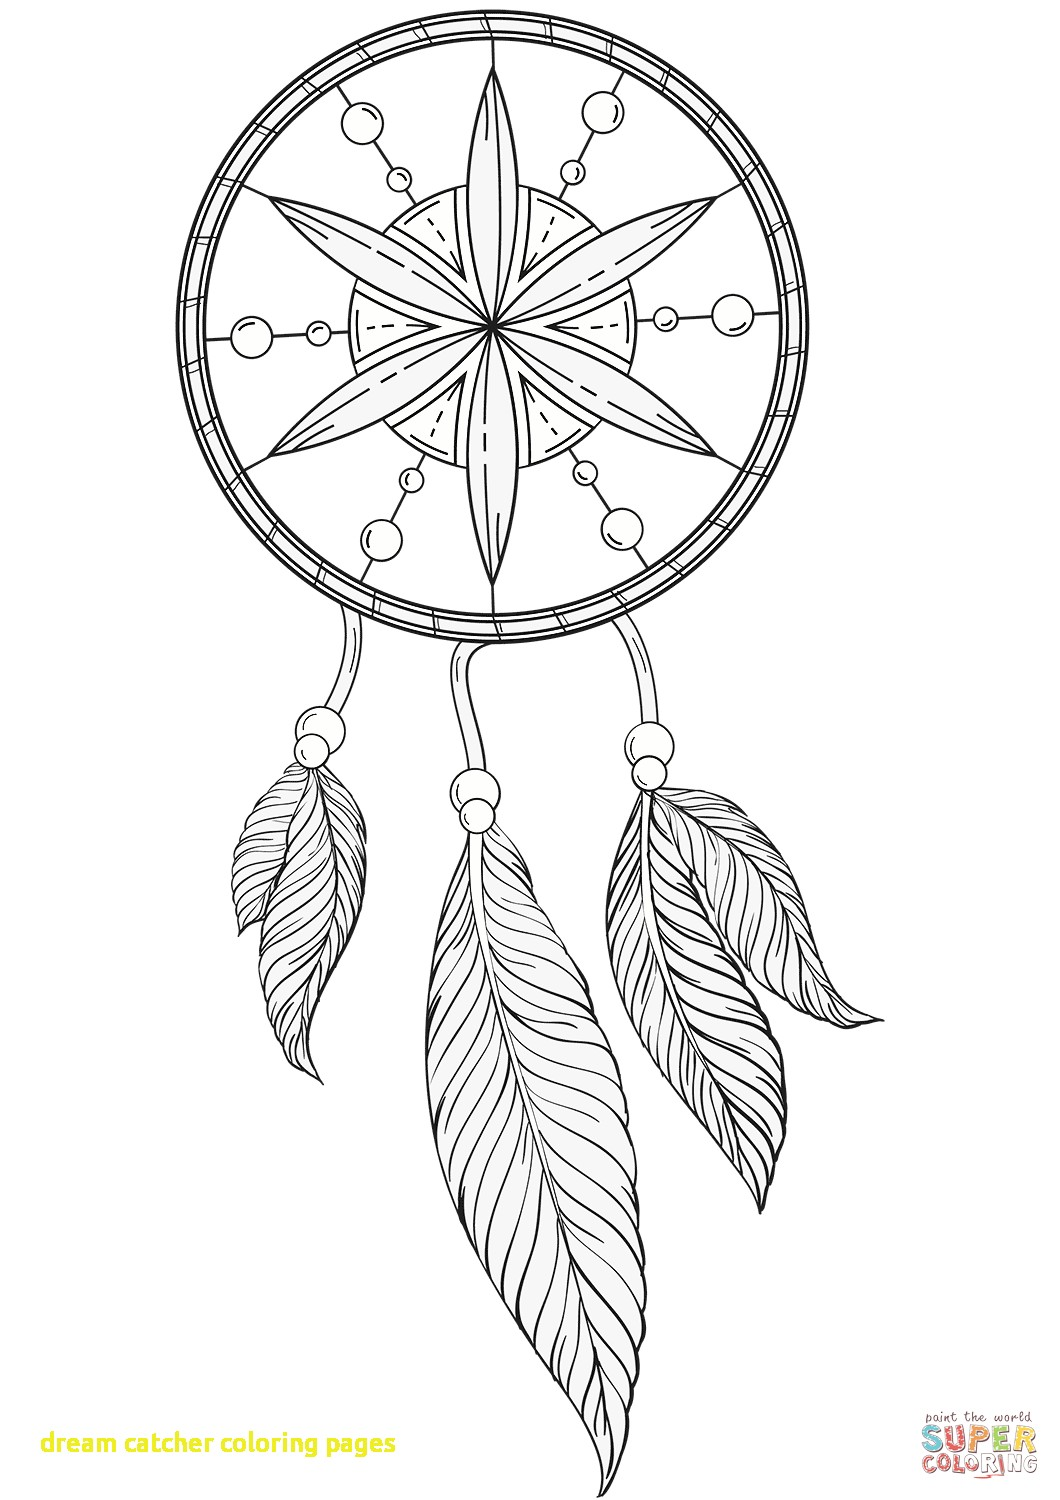 1060x1500 Dream Catcher Coloring Pages With Owl Dreamcatcher Animals